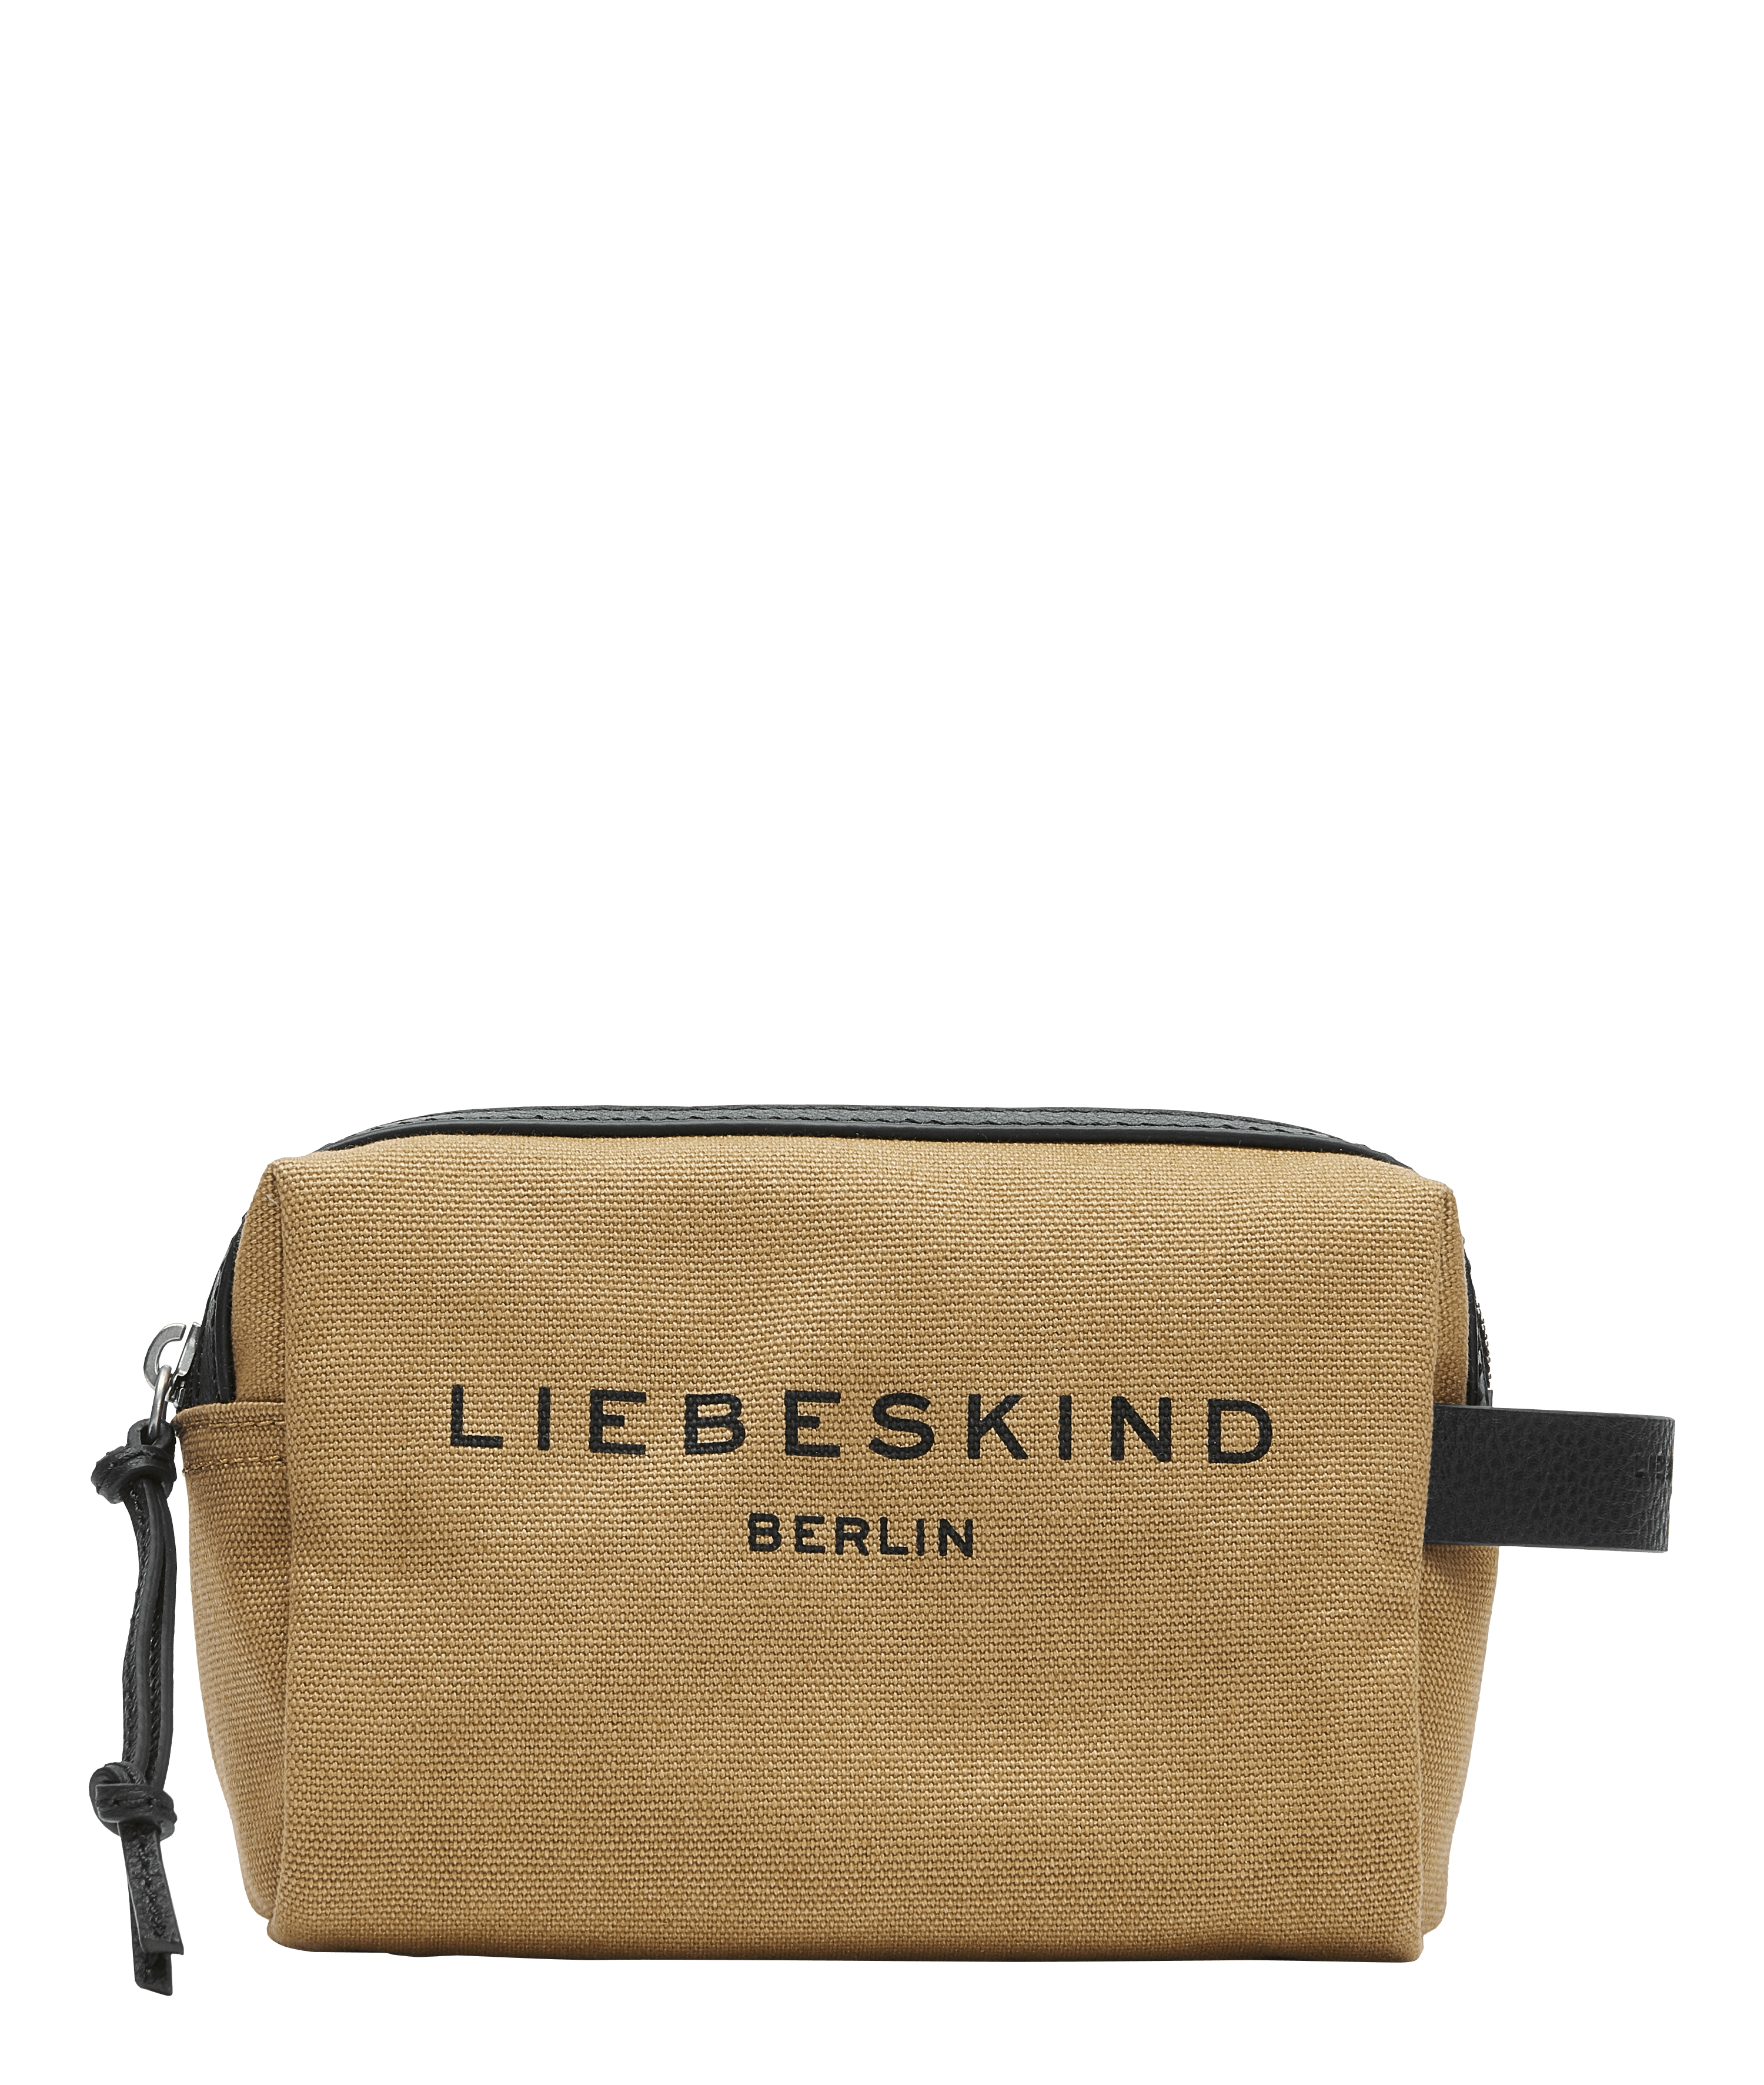 Liebeskind-Berlin Gray Cosmetic Pouch S